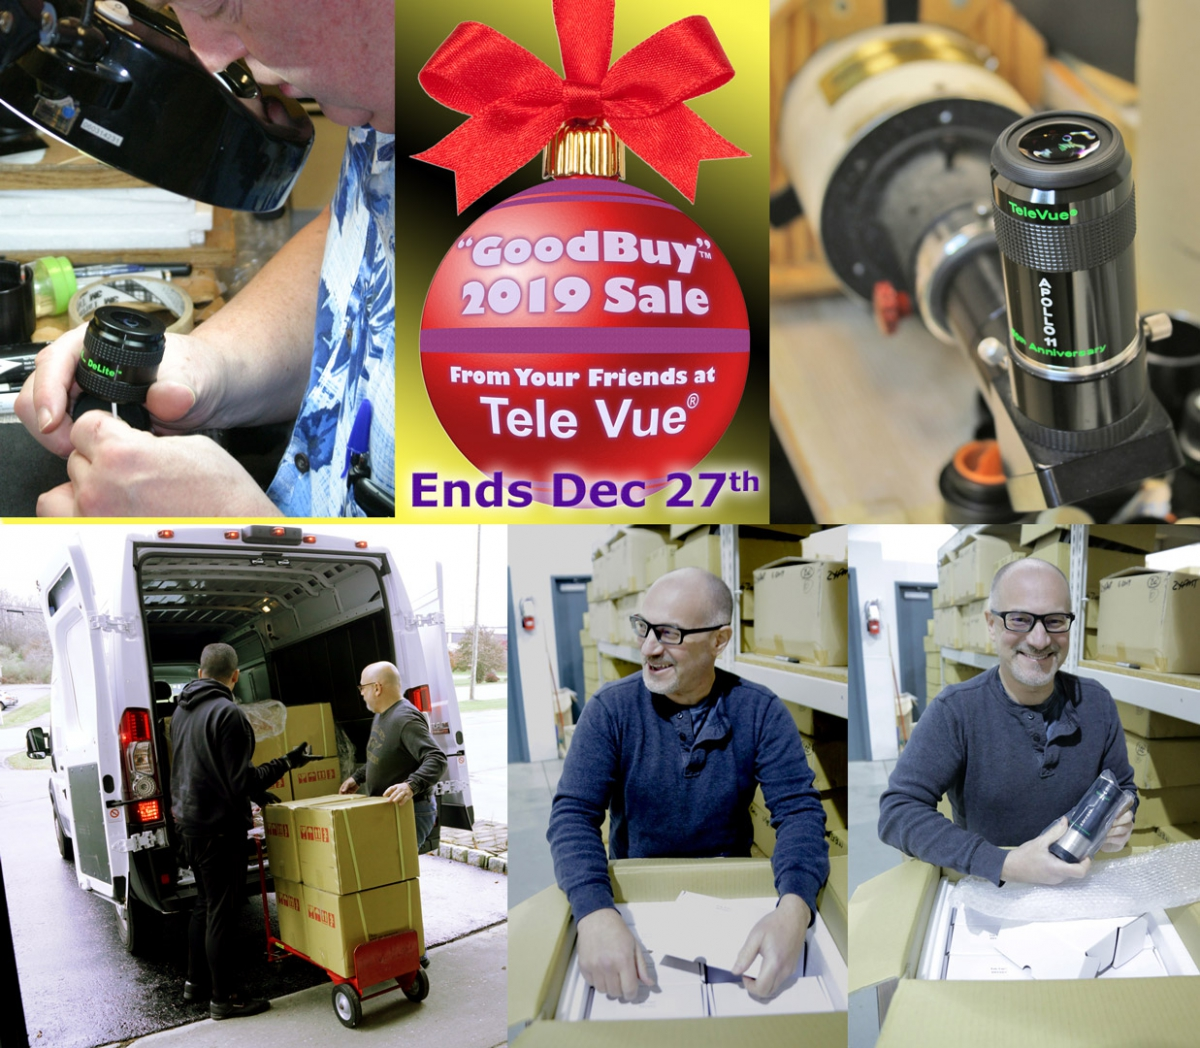 Tele Vue's Year End: Behind the Scenes!